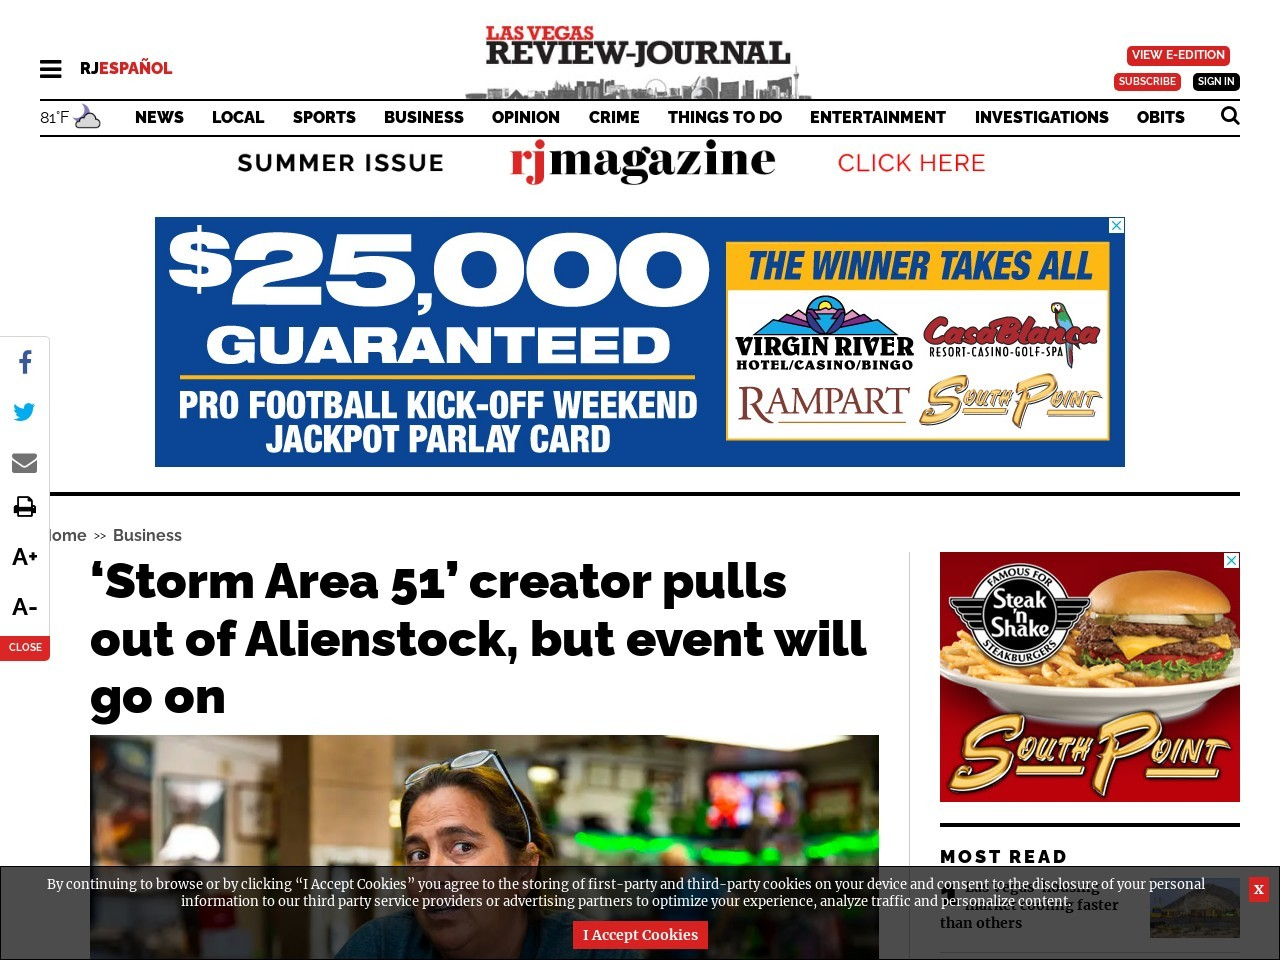 'Storm Area 51' creator pulls out of Alienstock, but event will go on